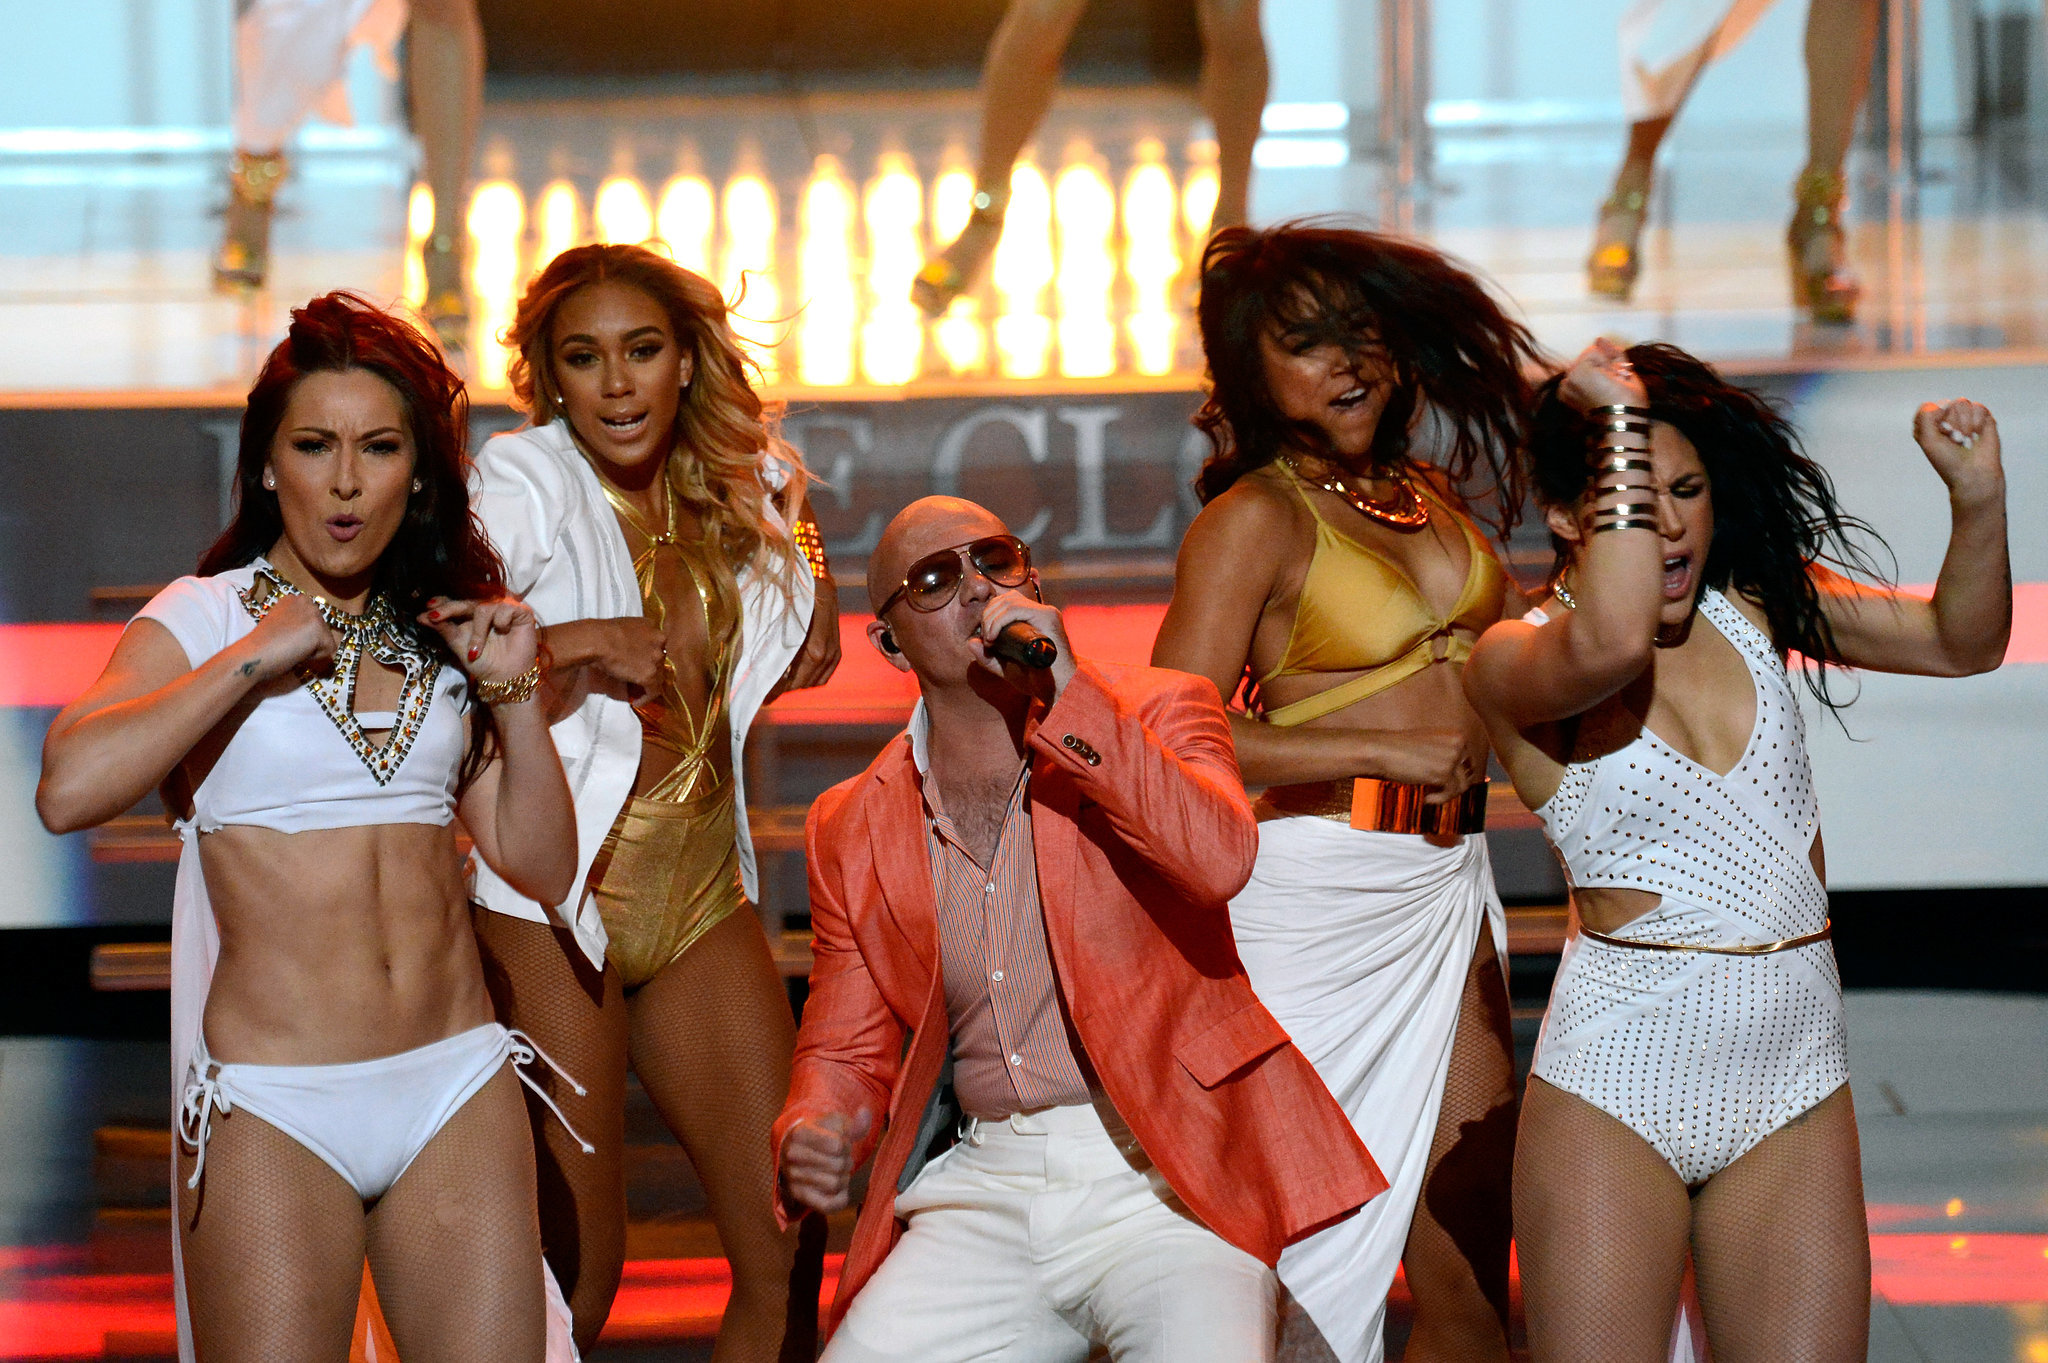 Pitbull Was Surrounded by Women During His Performance